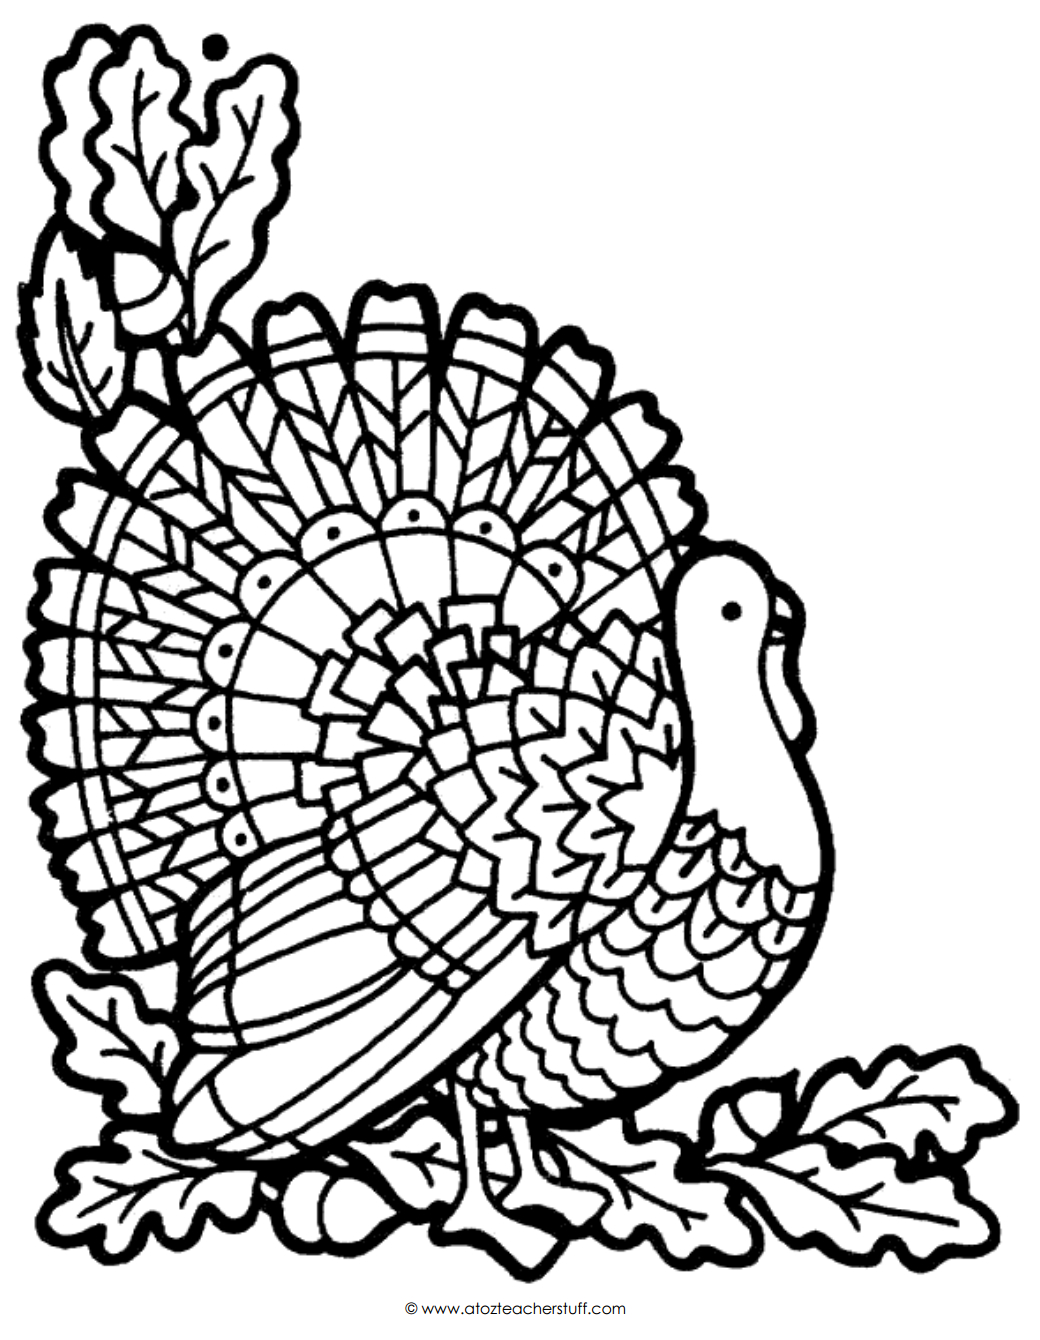 Turkey Coloring Page | A To Z Teacher Stuff Printable Pages And - Free Printable Pictures Of Turkeys To Color